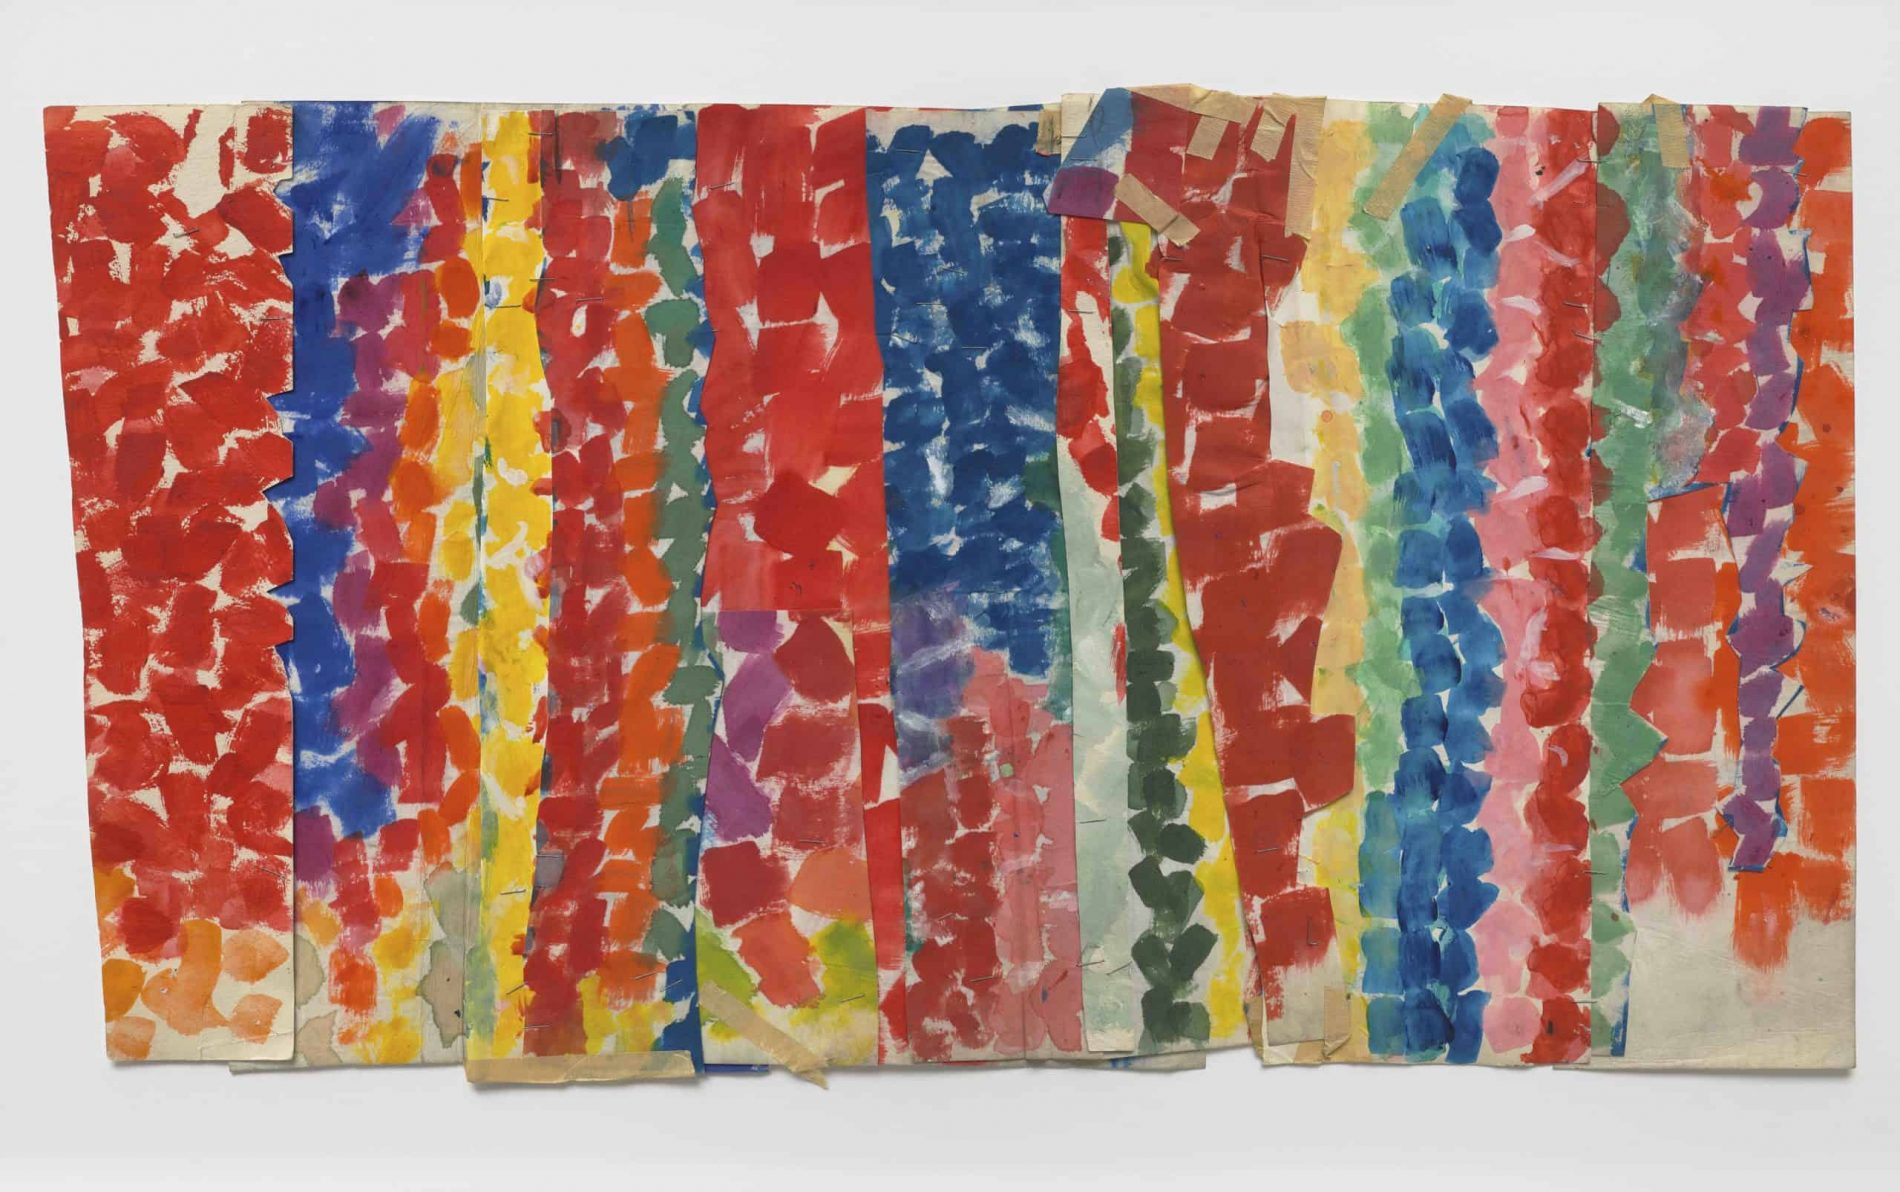 Alma W. Thomas (American, 1891–1978), Untitled, ca. 1968. Acrylic on cut, stapled, and taped paper. Collection of Steve and Lesley Testan as curated by Emily Friedman Fine Art. Image courtesy Mnuchin Gallery, New York. Photography by Tom Powel Imaging.